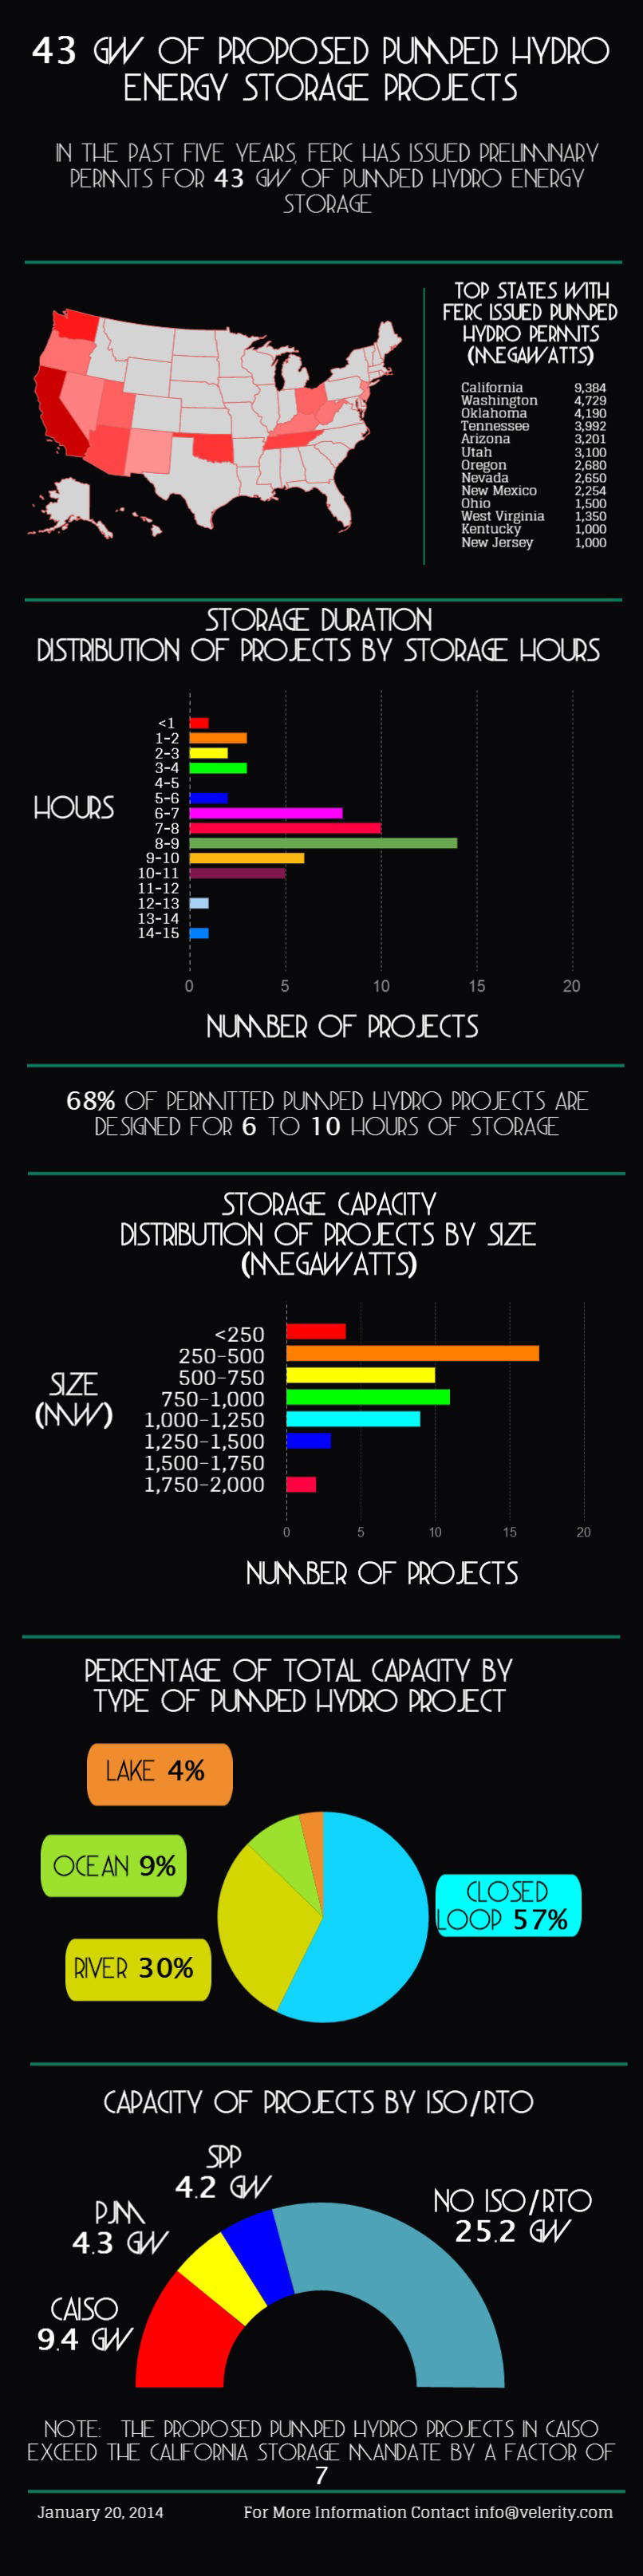 Pumped Hydro Infographic 1-20-14 2.jpg